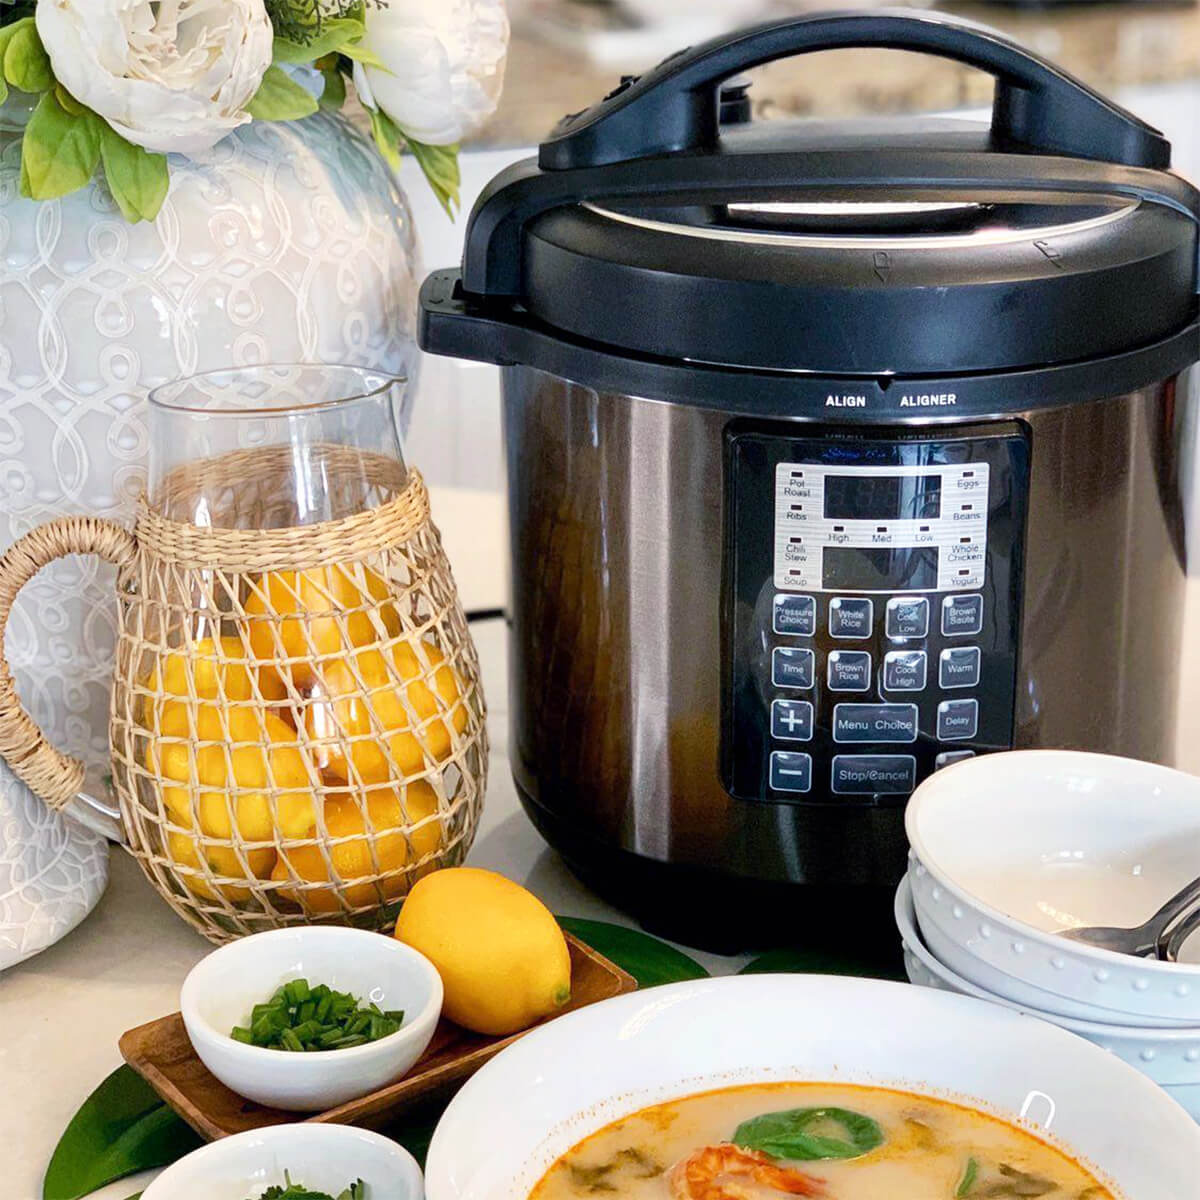 Sirena Rapid Pot, 15-in-1 Pressure Cooker